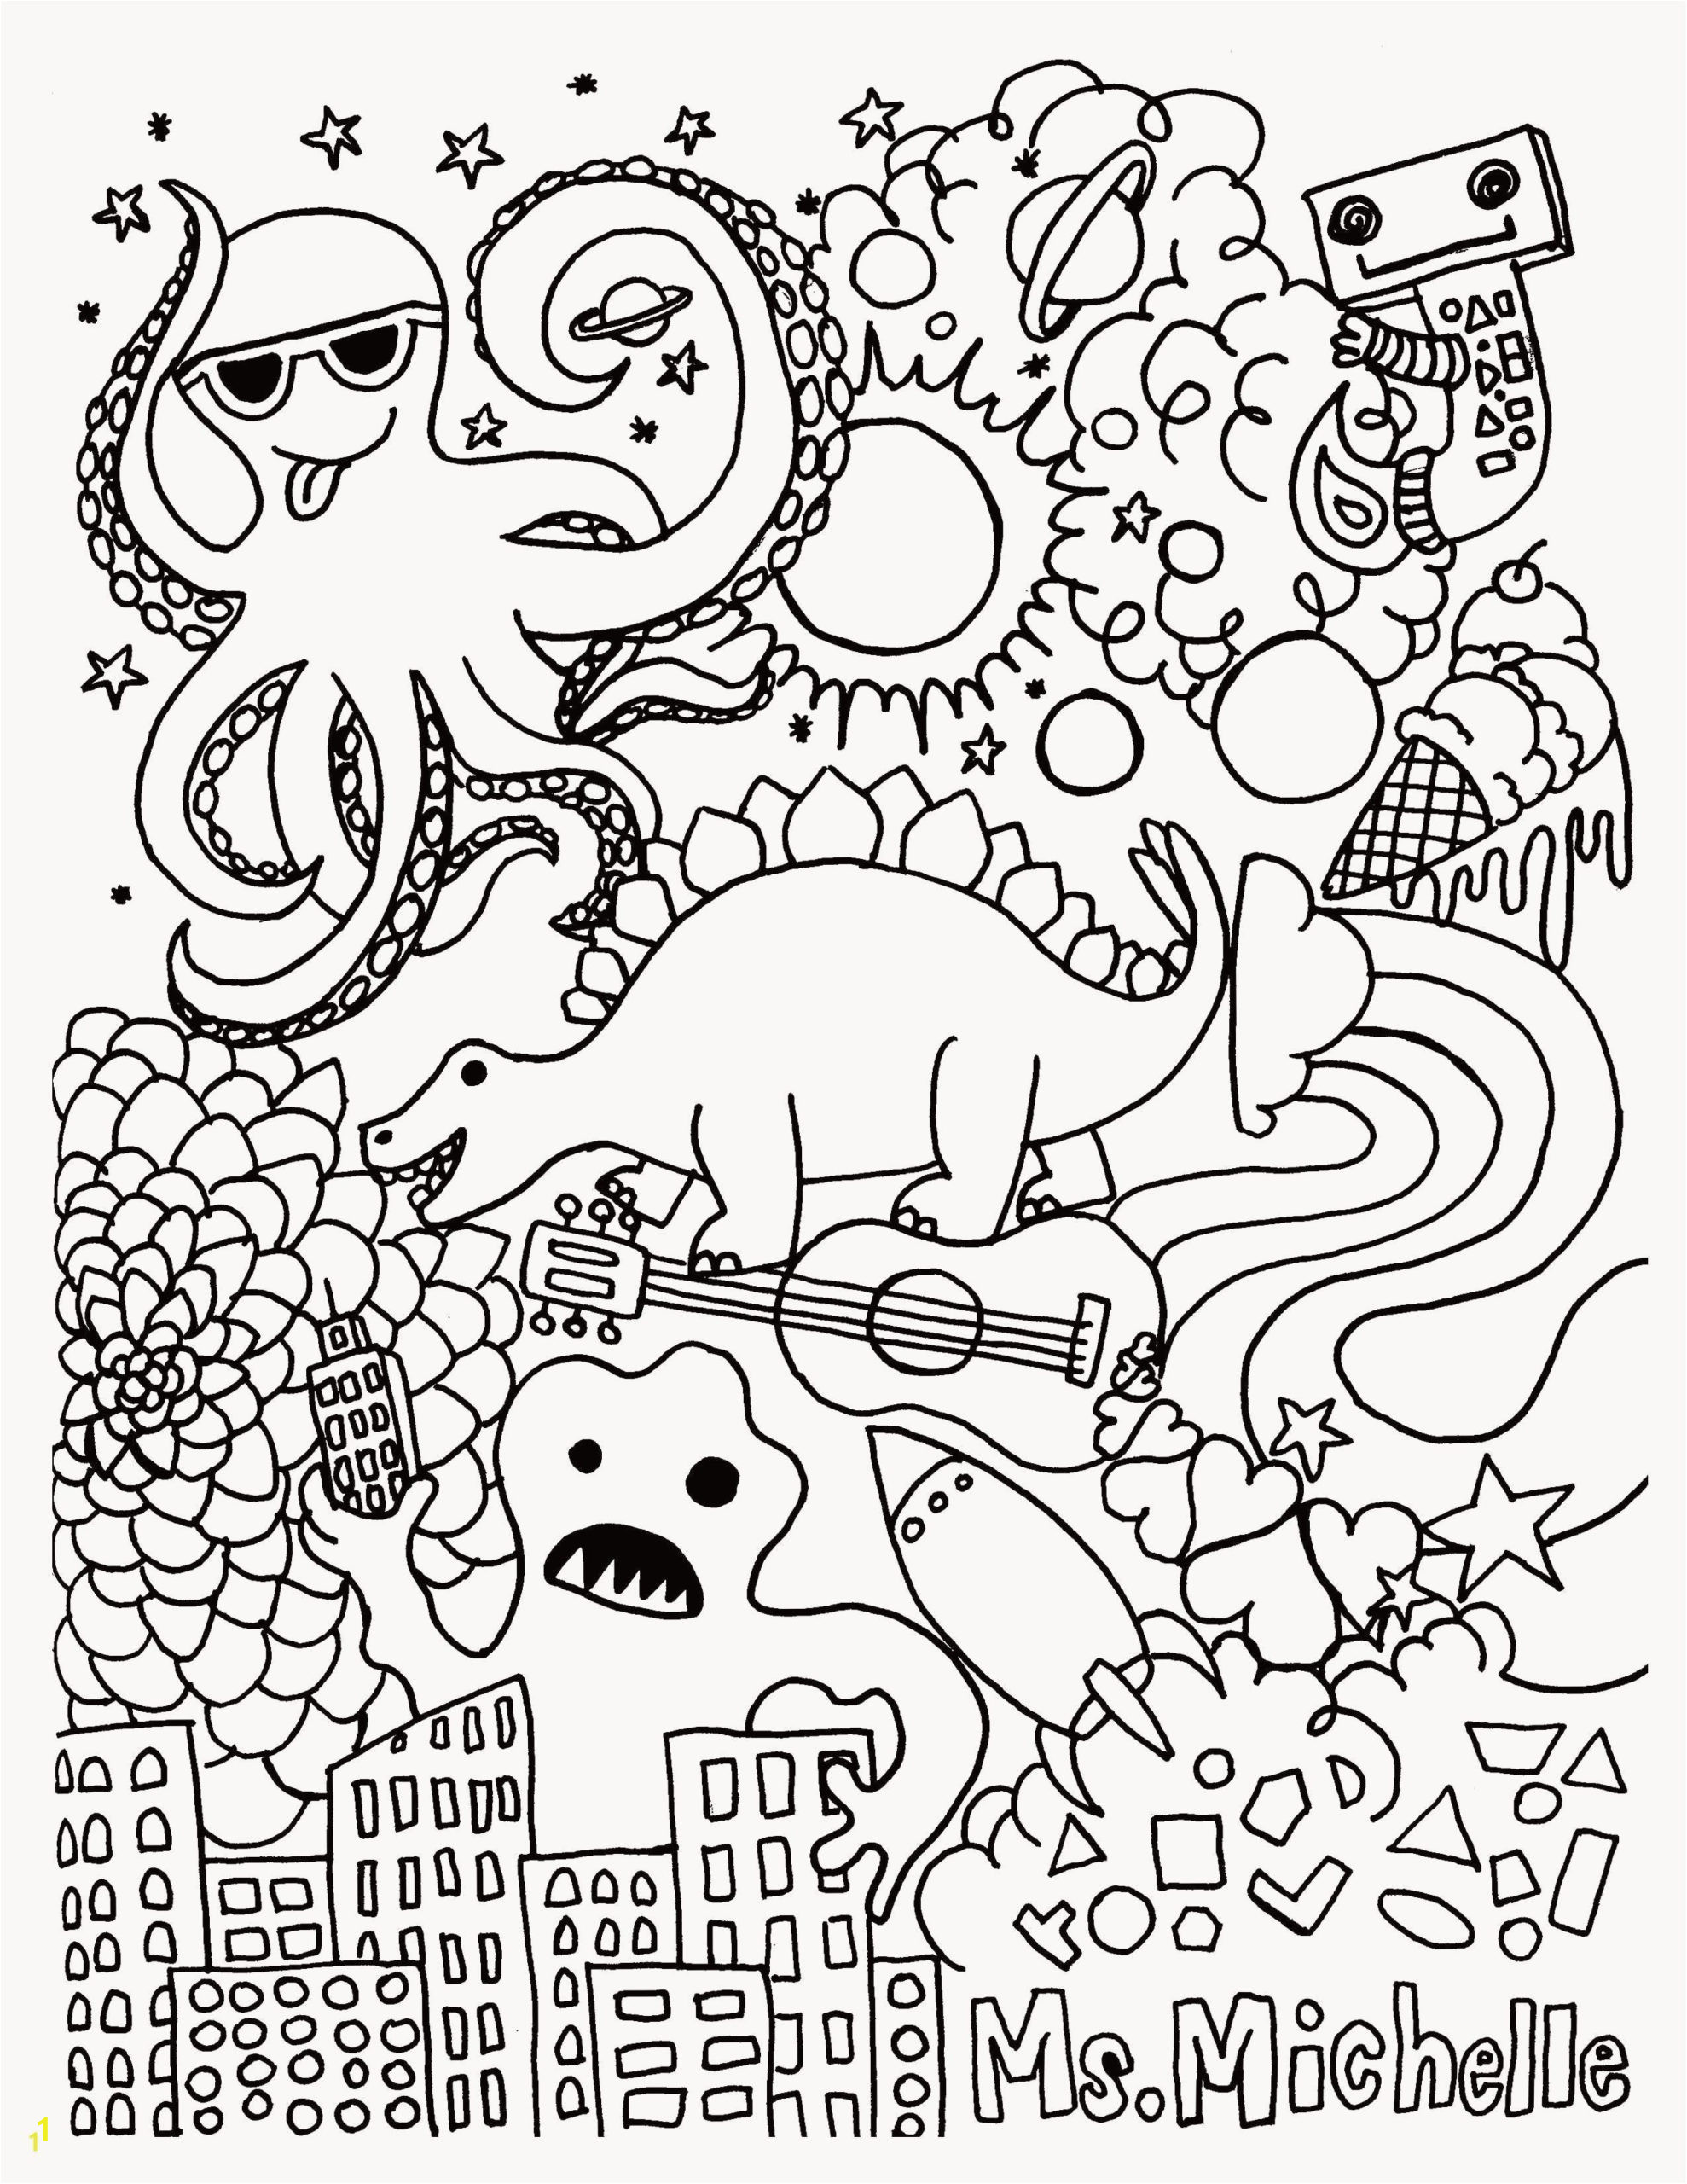 hard coloring pages for adults creative haven modern tattoo designs book scooby doo halloween copic dagdrommar best fantasy books muscle car miraculous red crayon story kids animal